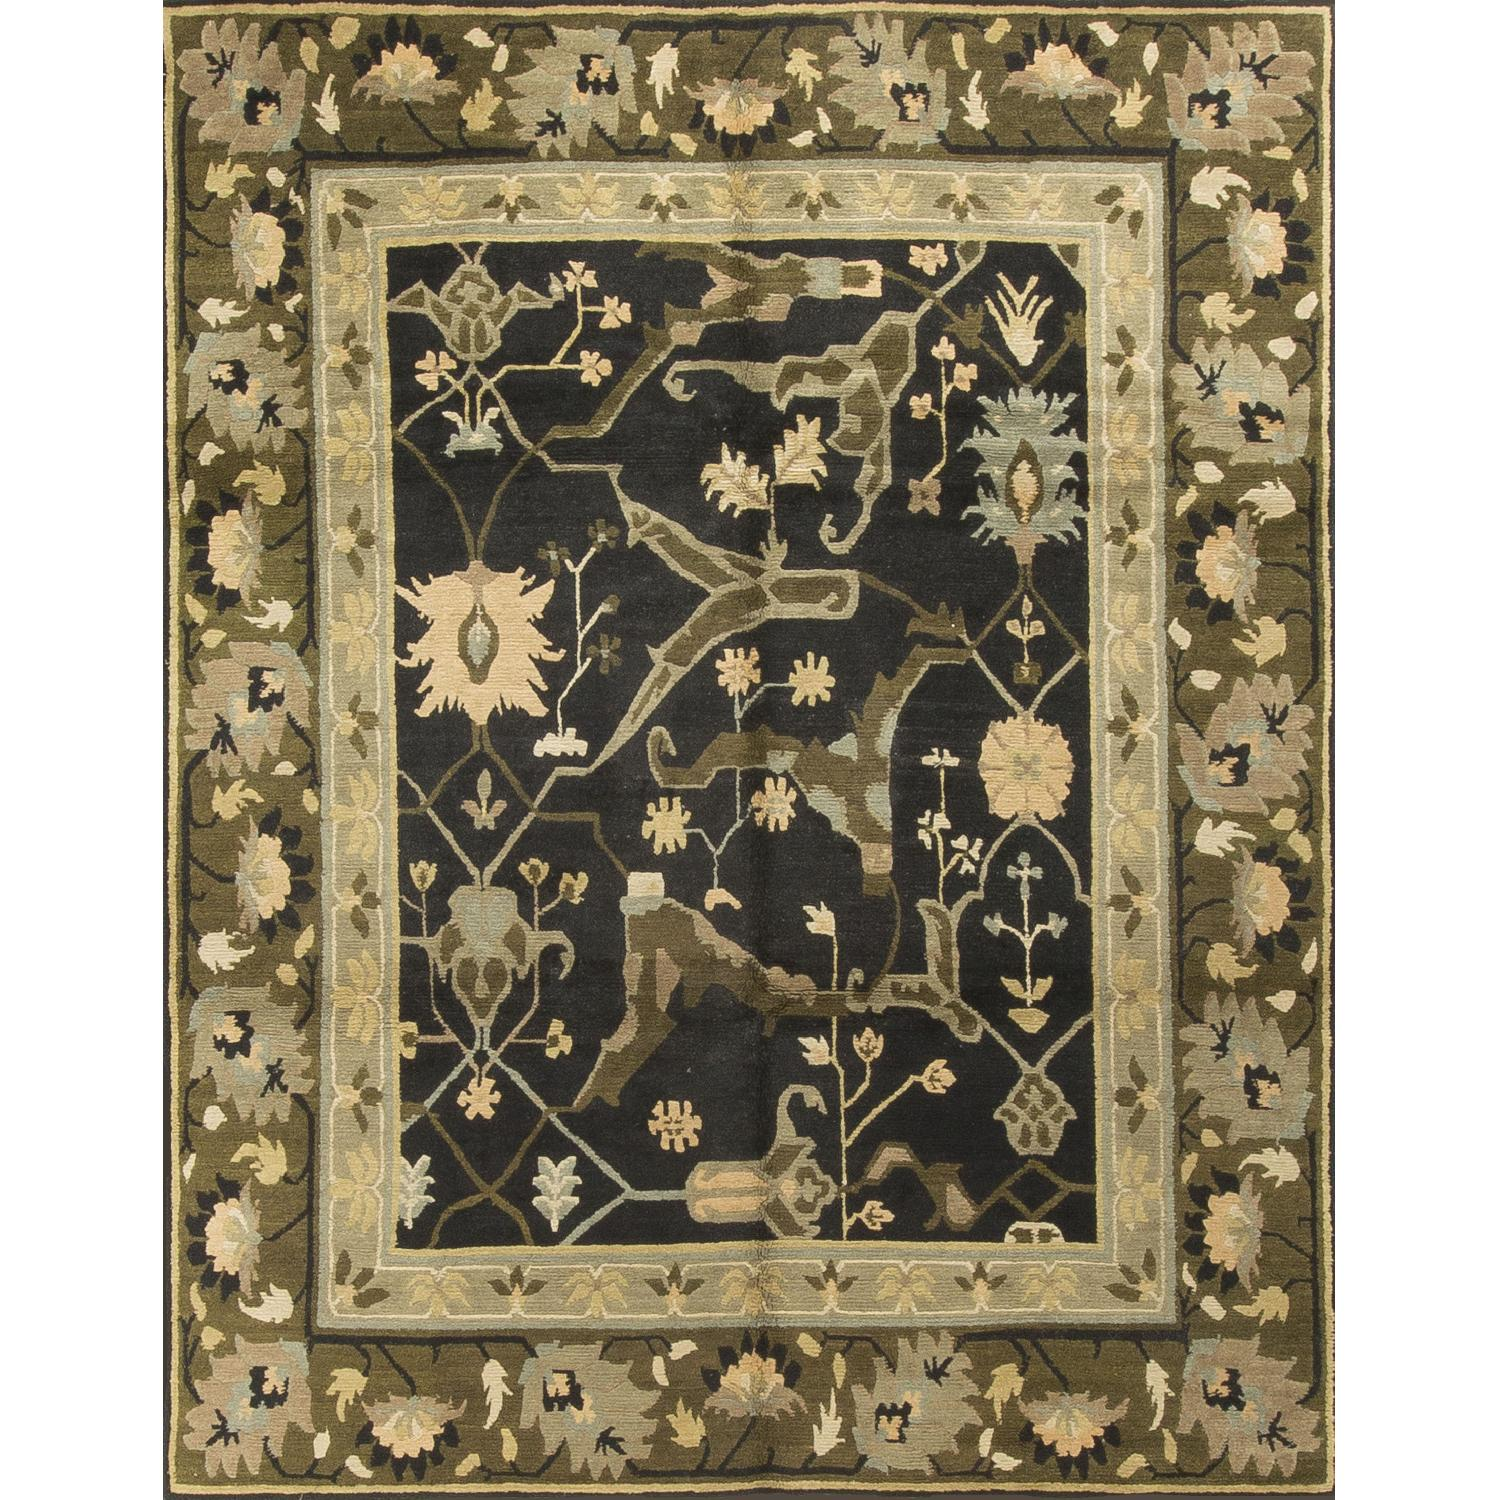 Modern Contemporary Hand Knotted Wool Rug in Black/Beige/Green - image-0